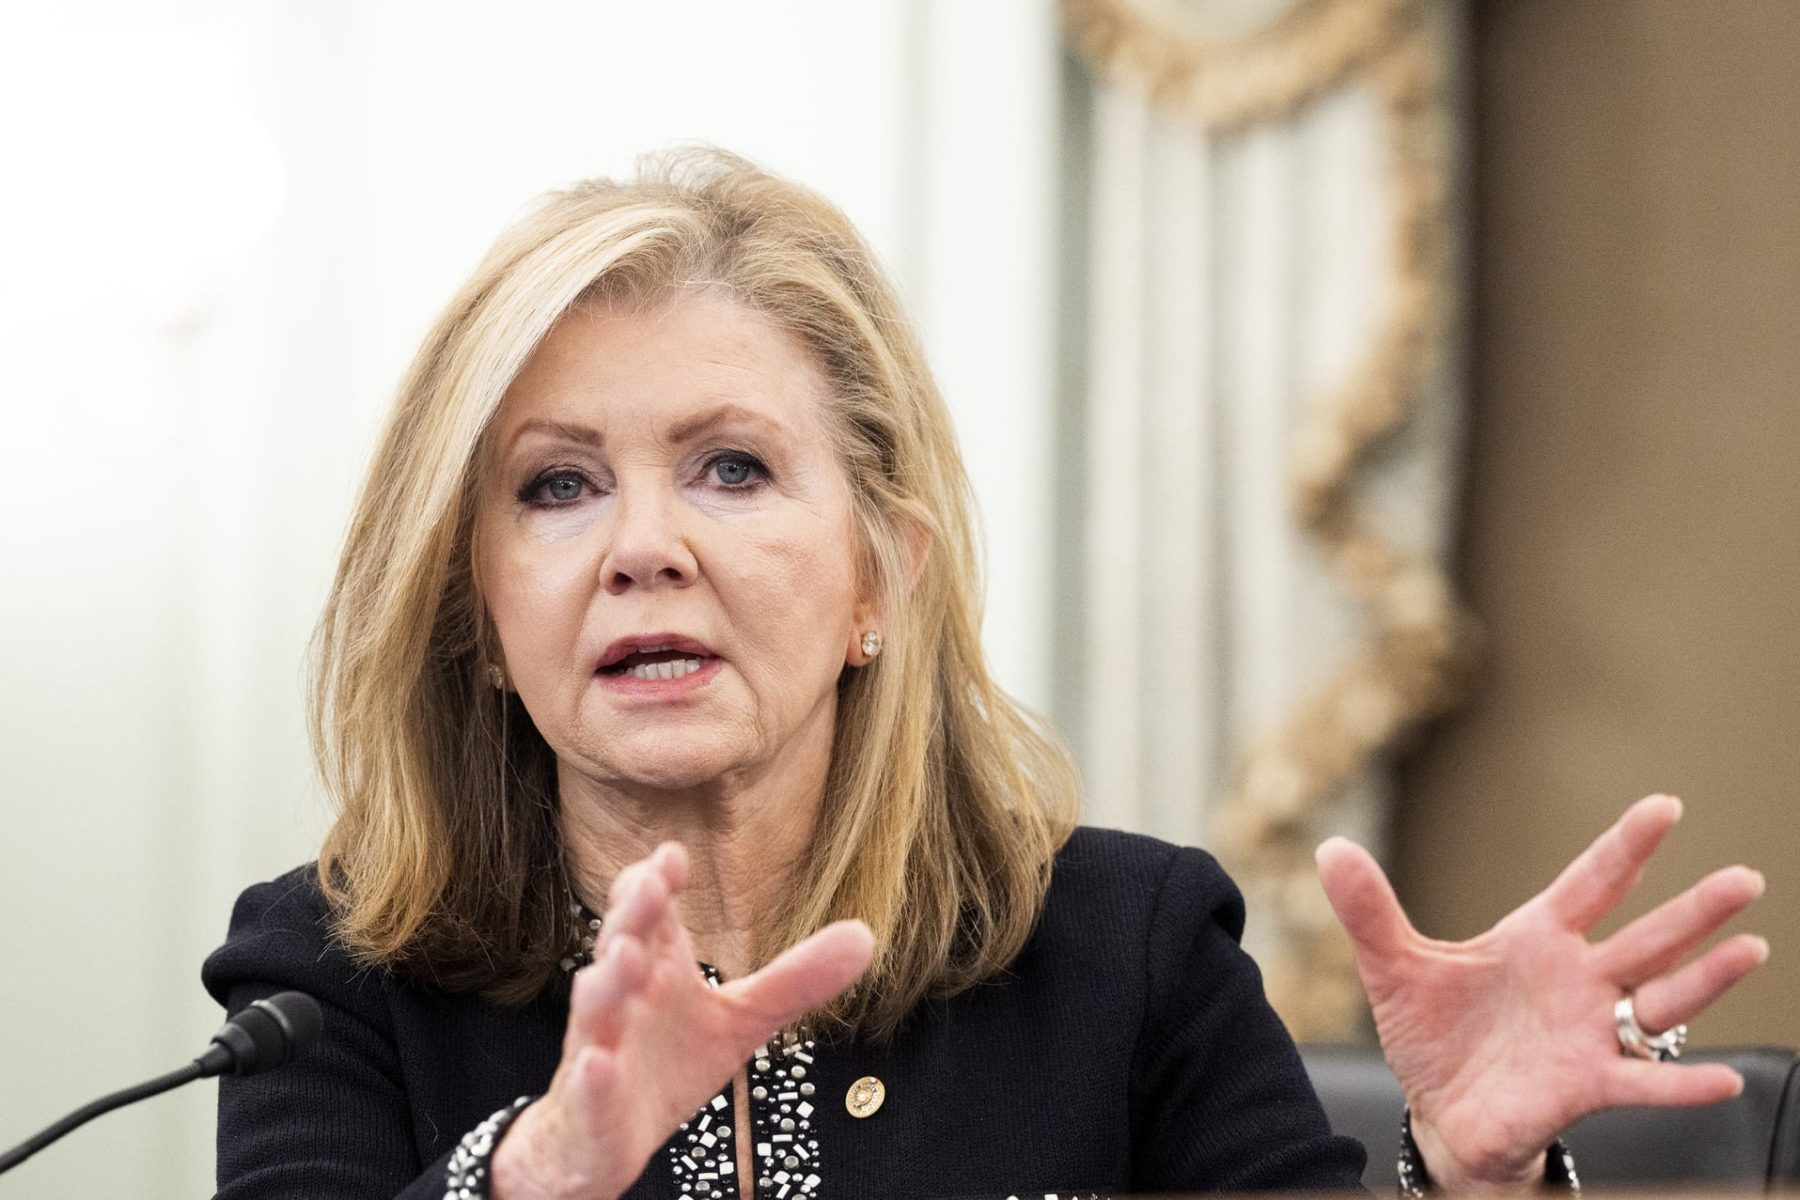 U.S. Senator Marsha Blackburn speaking at a senate hearing.